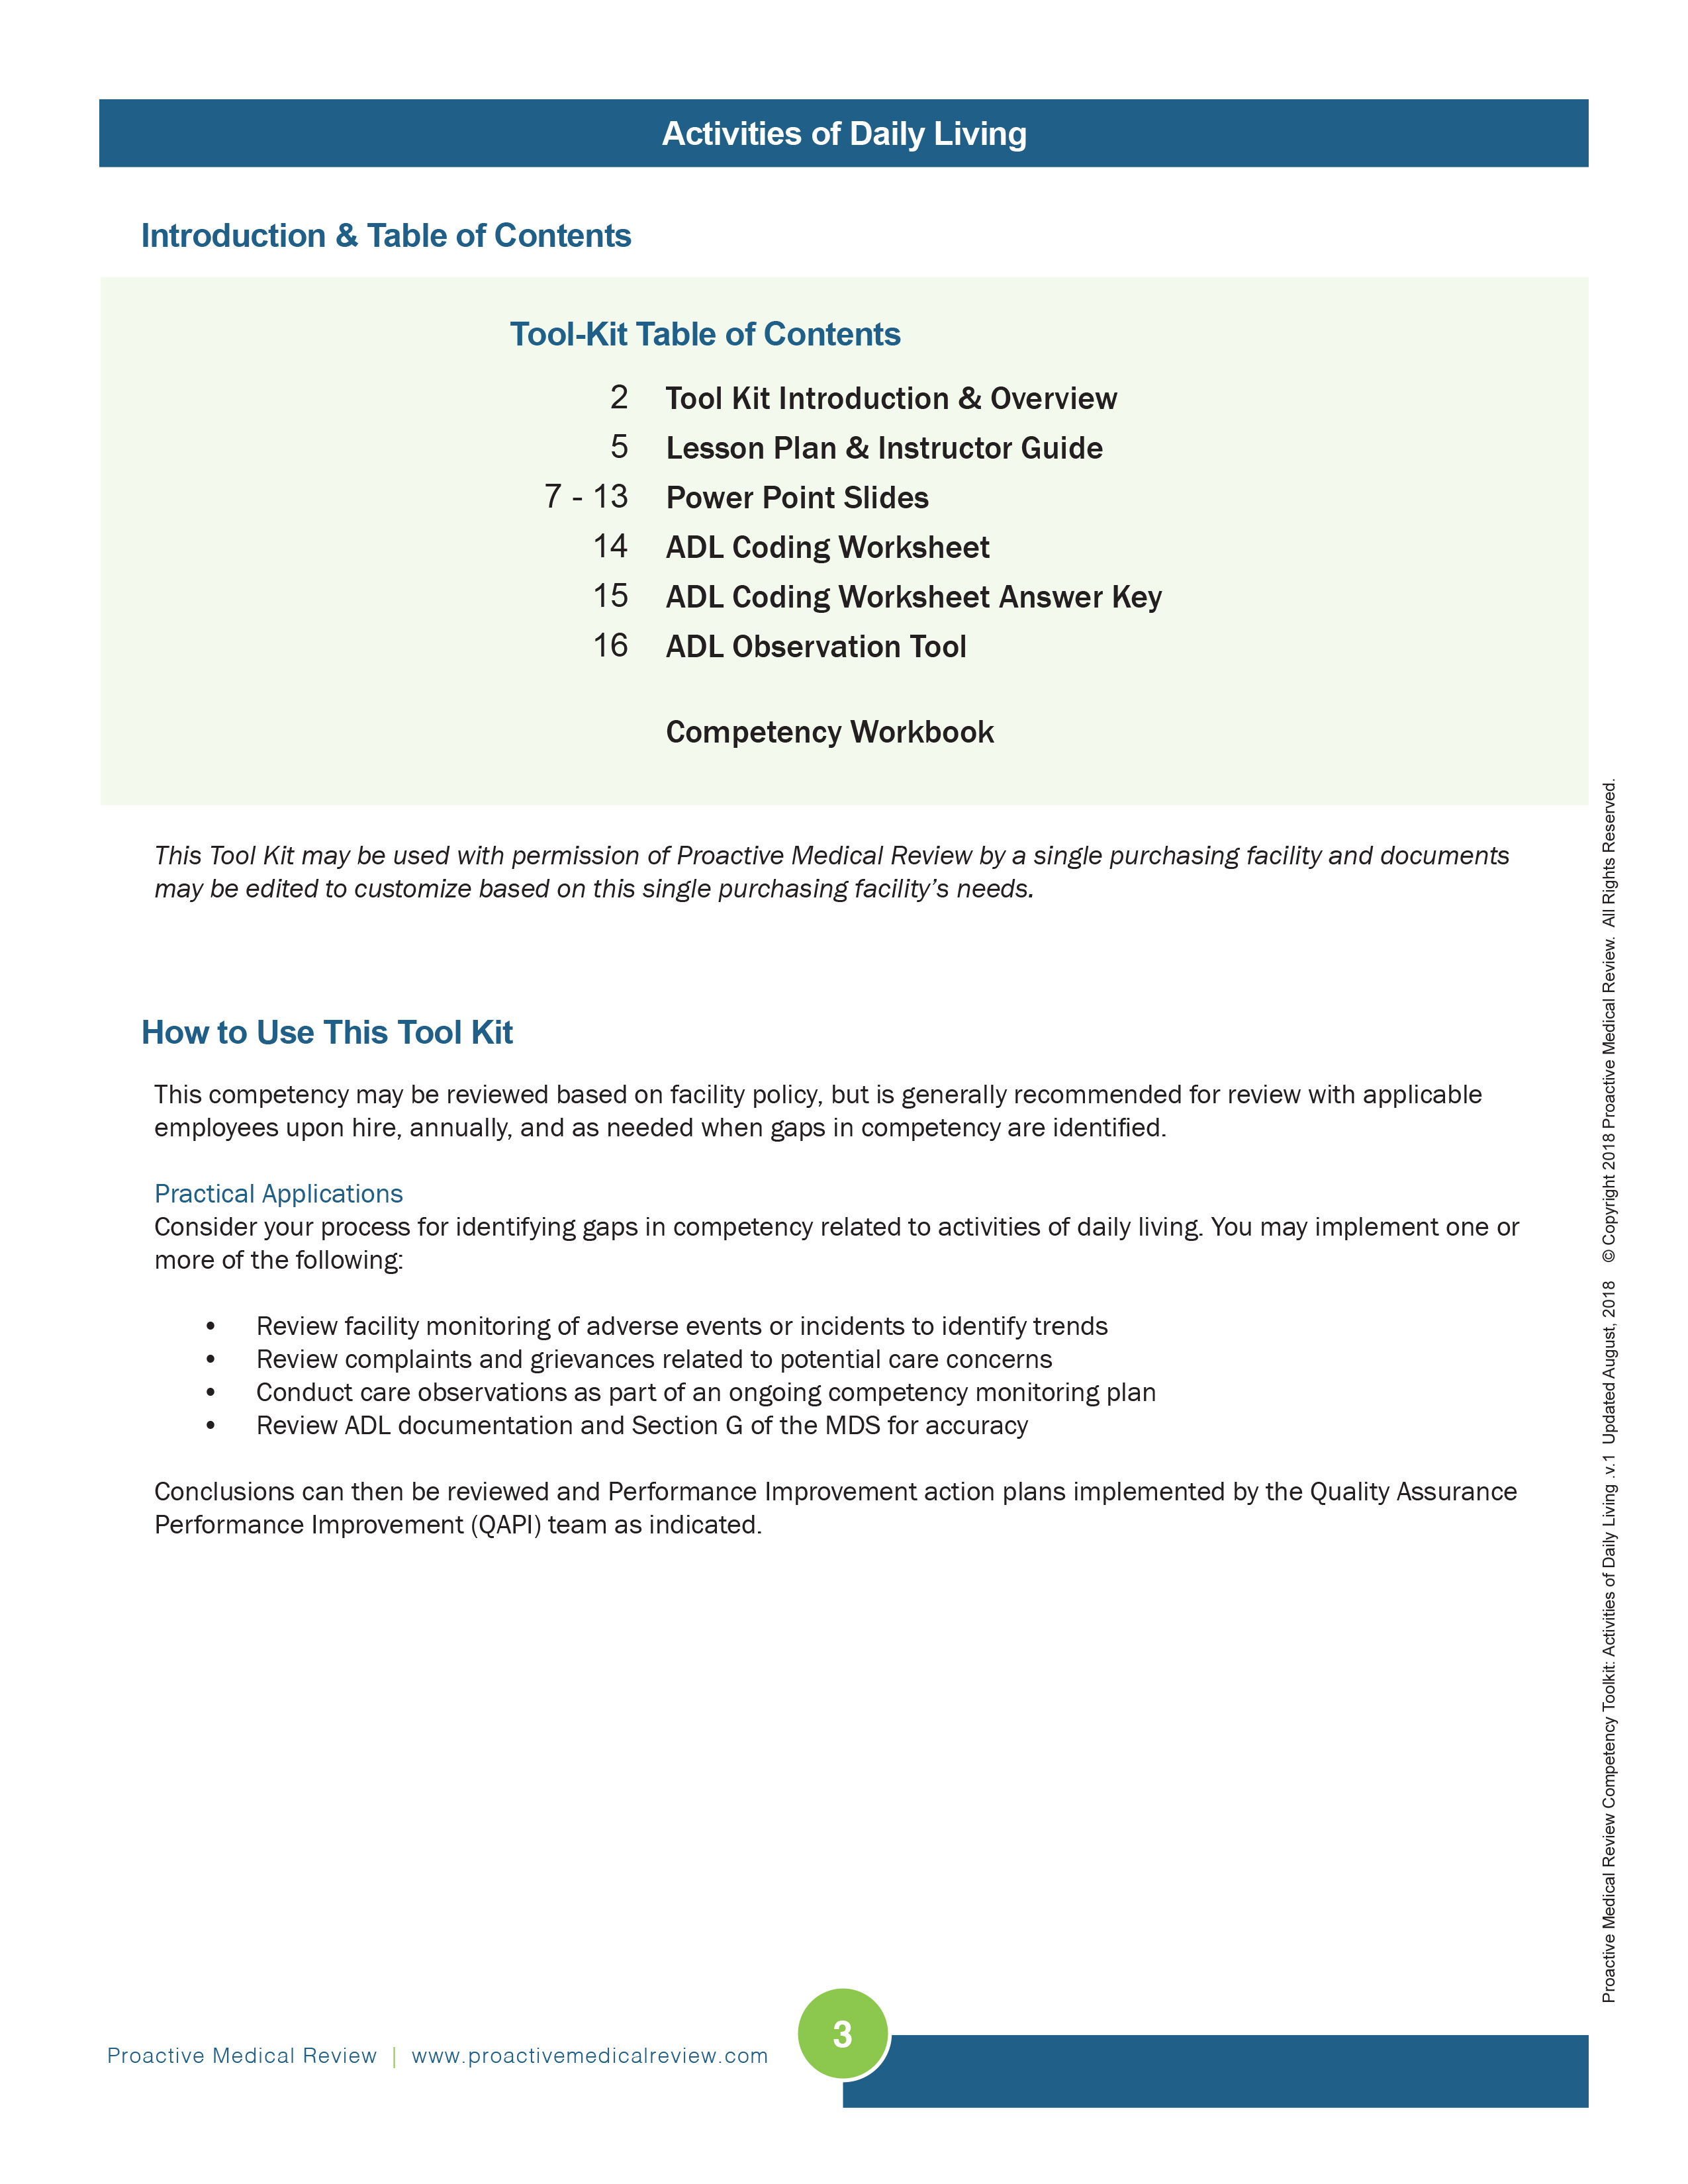 Activities Of Daily Living Competency Tool Kit